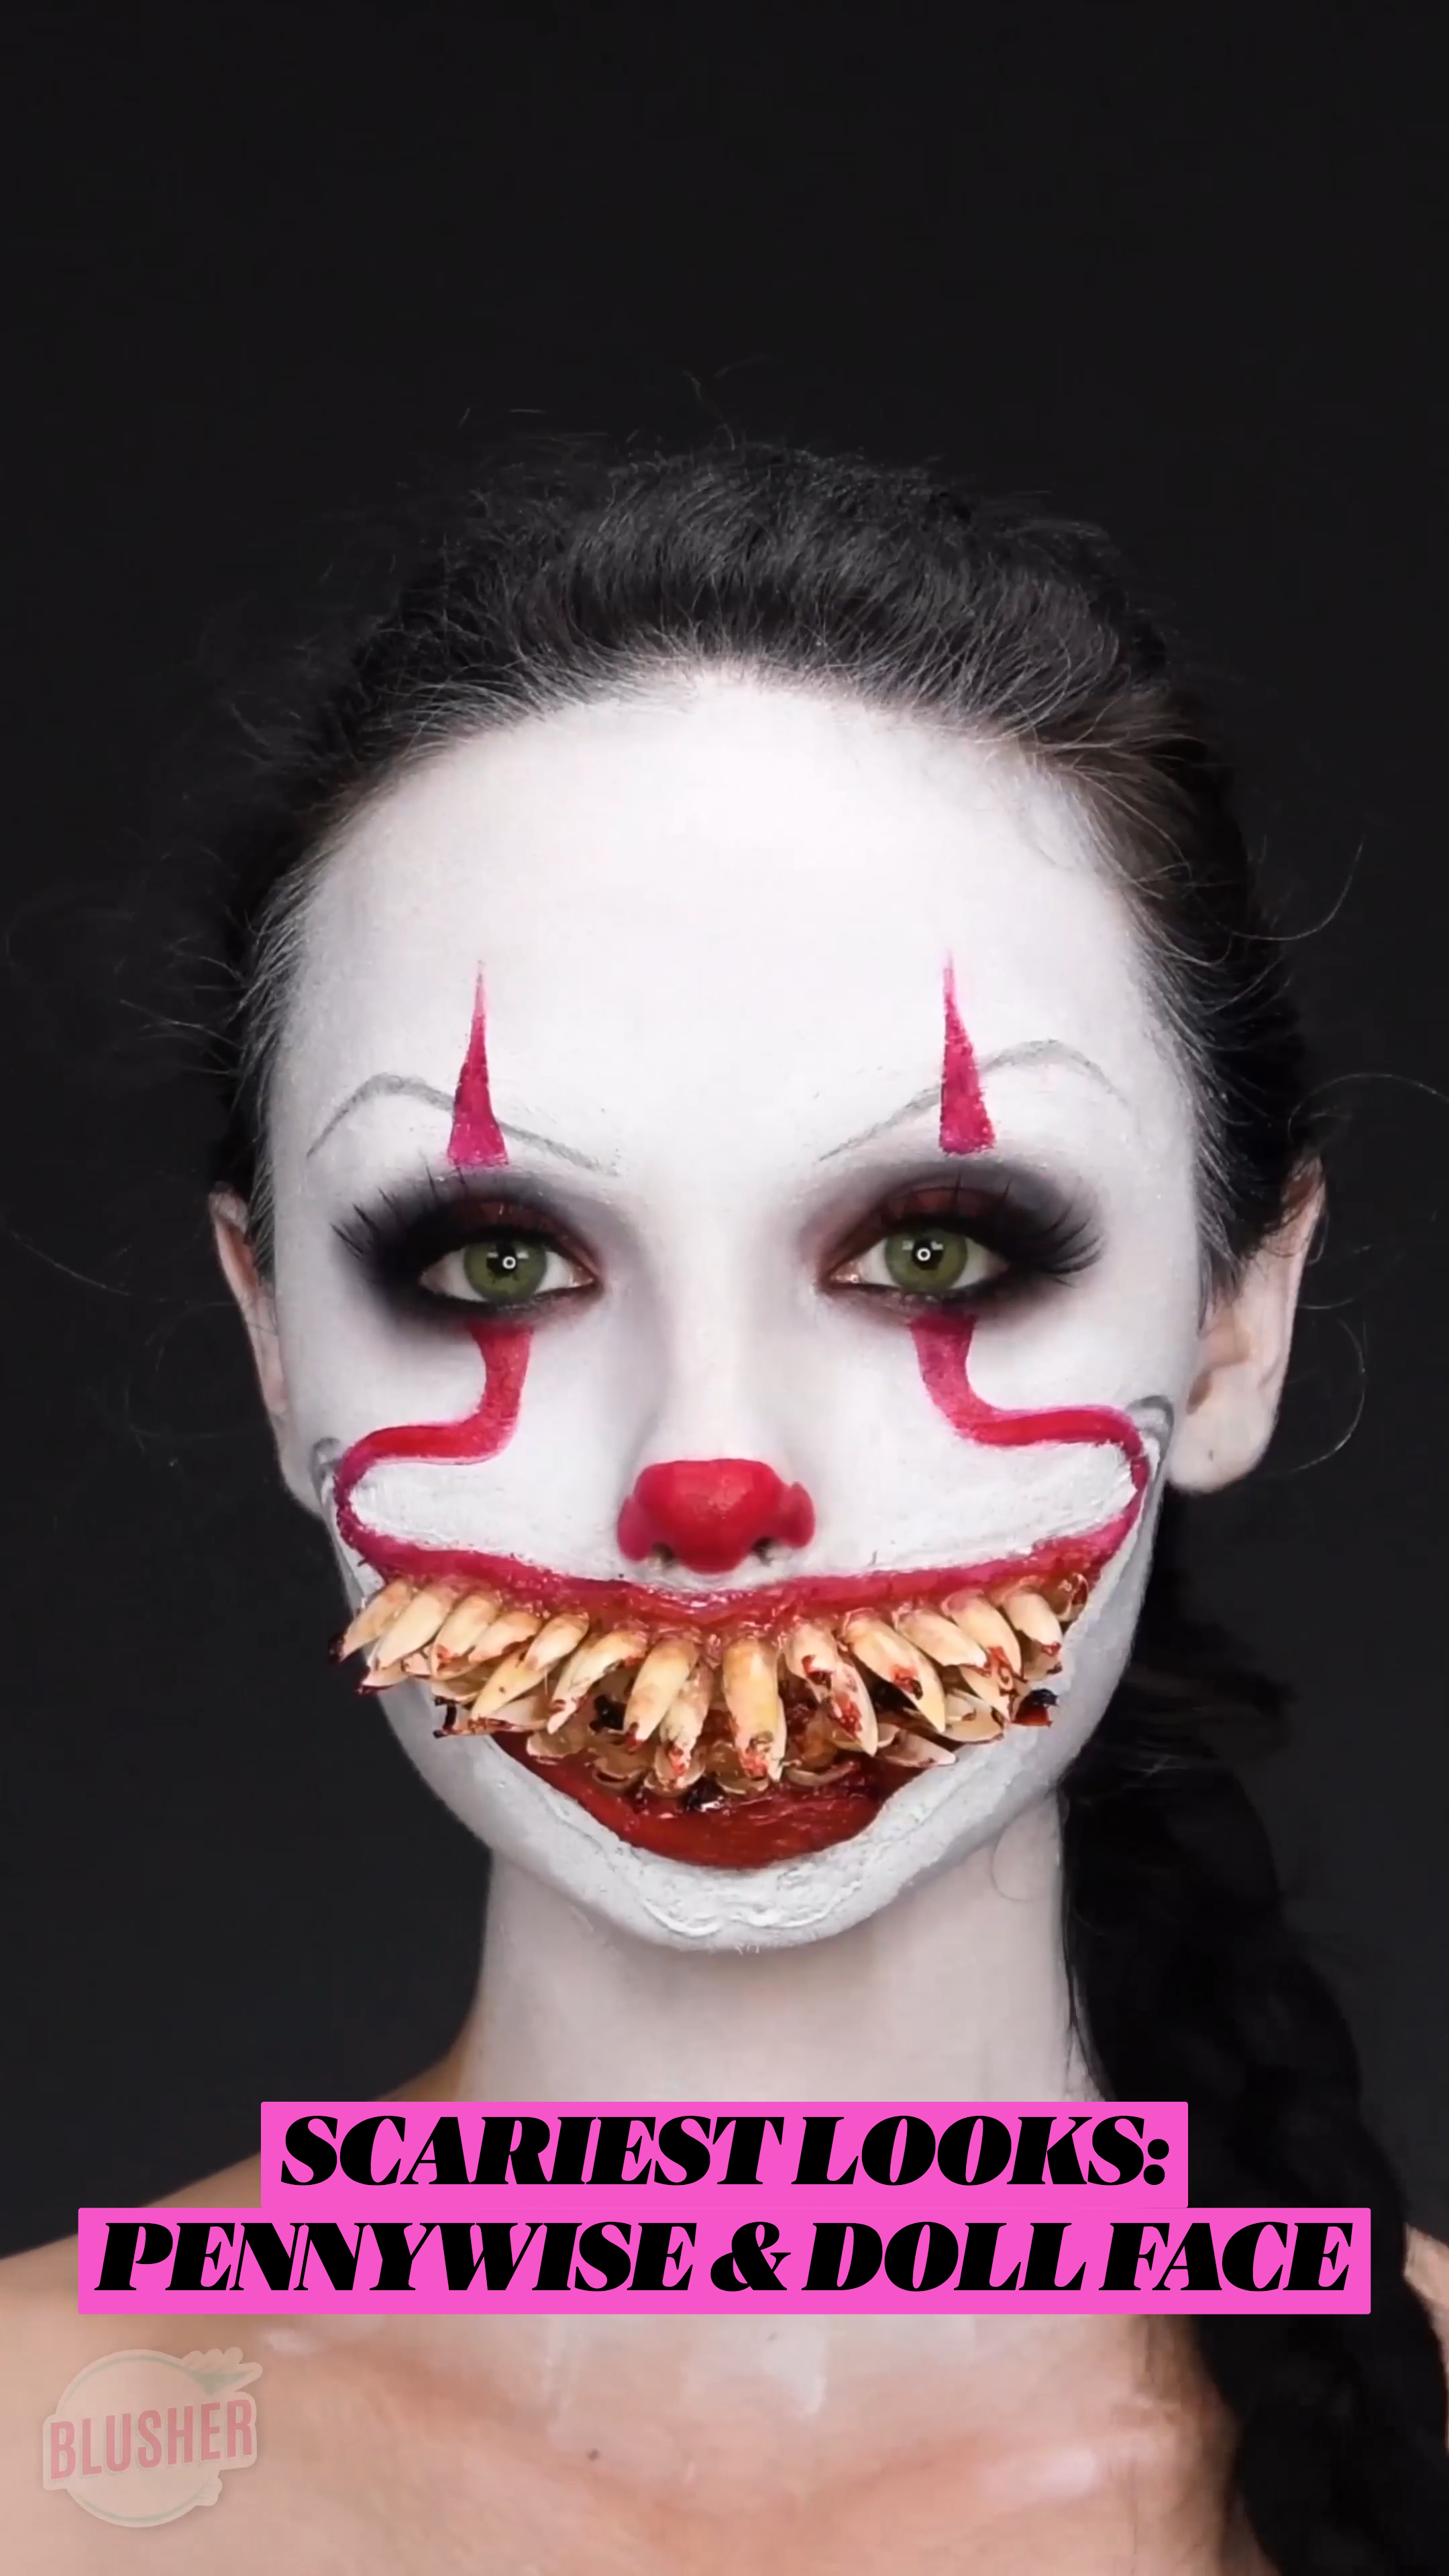 SCARIEST LOOKS: PENNYWISE & DOLL FACE